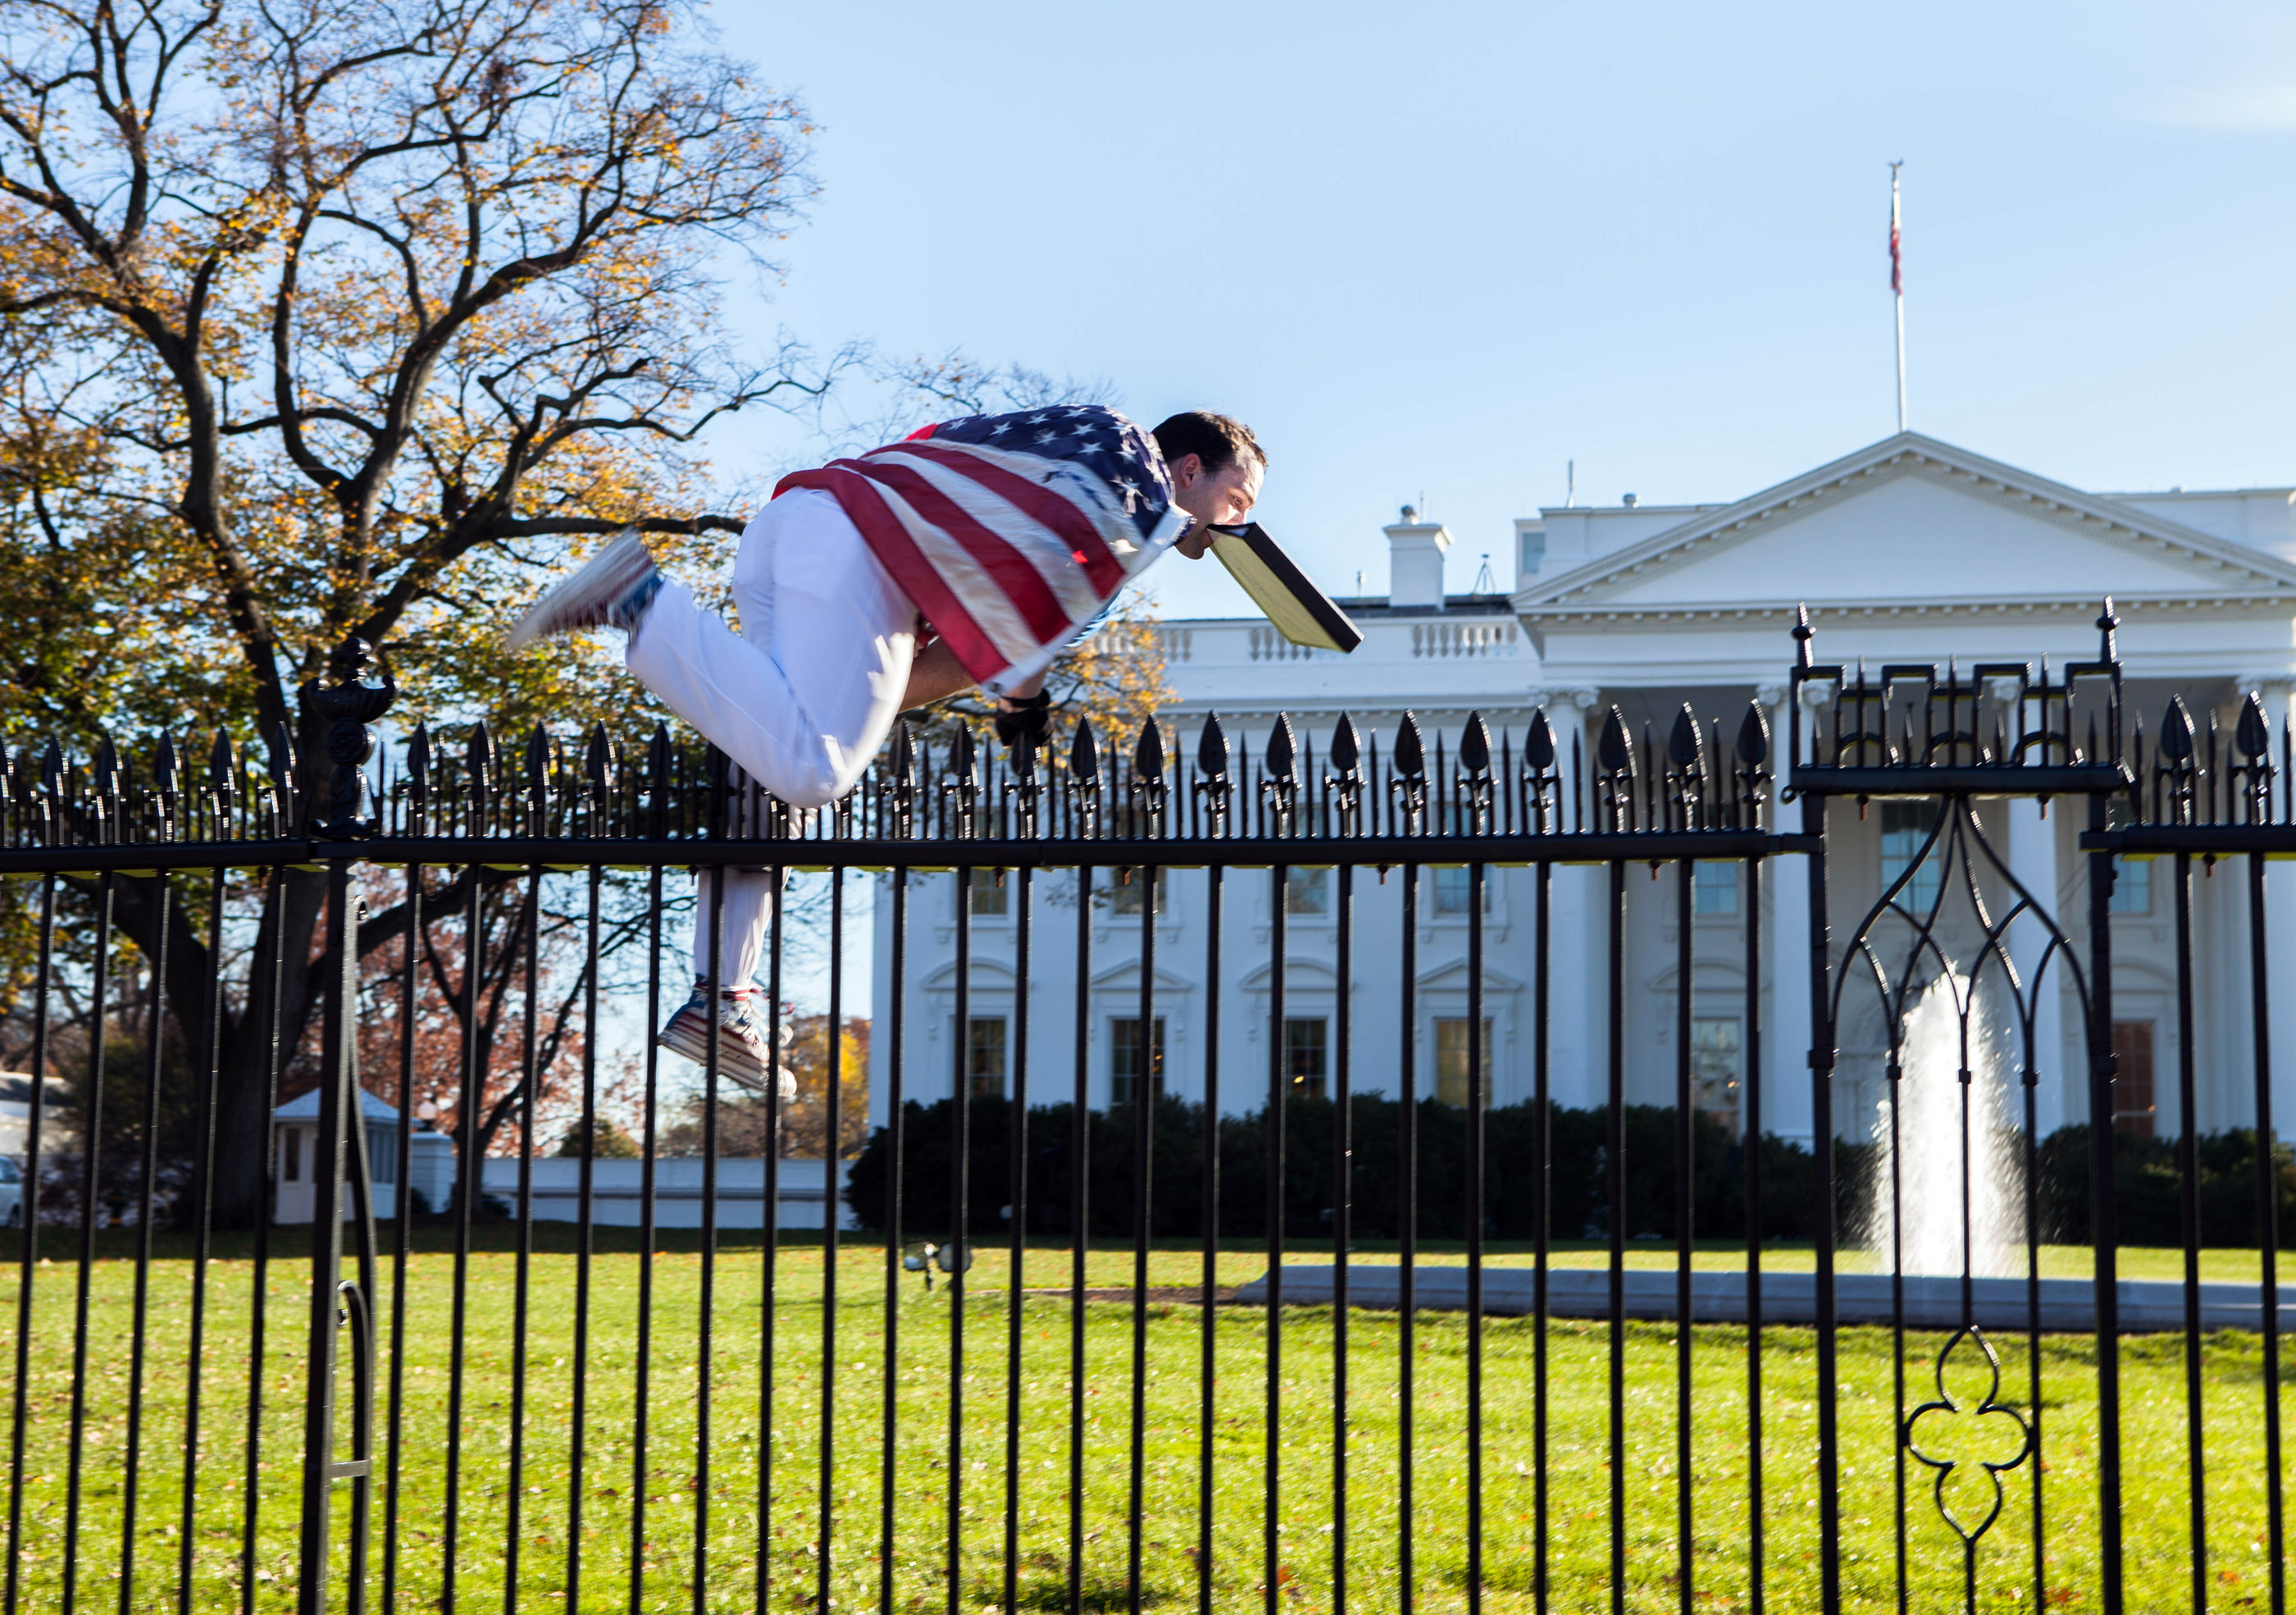 Attorney White House Fence Jump Was Act Of Protest Wtop